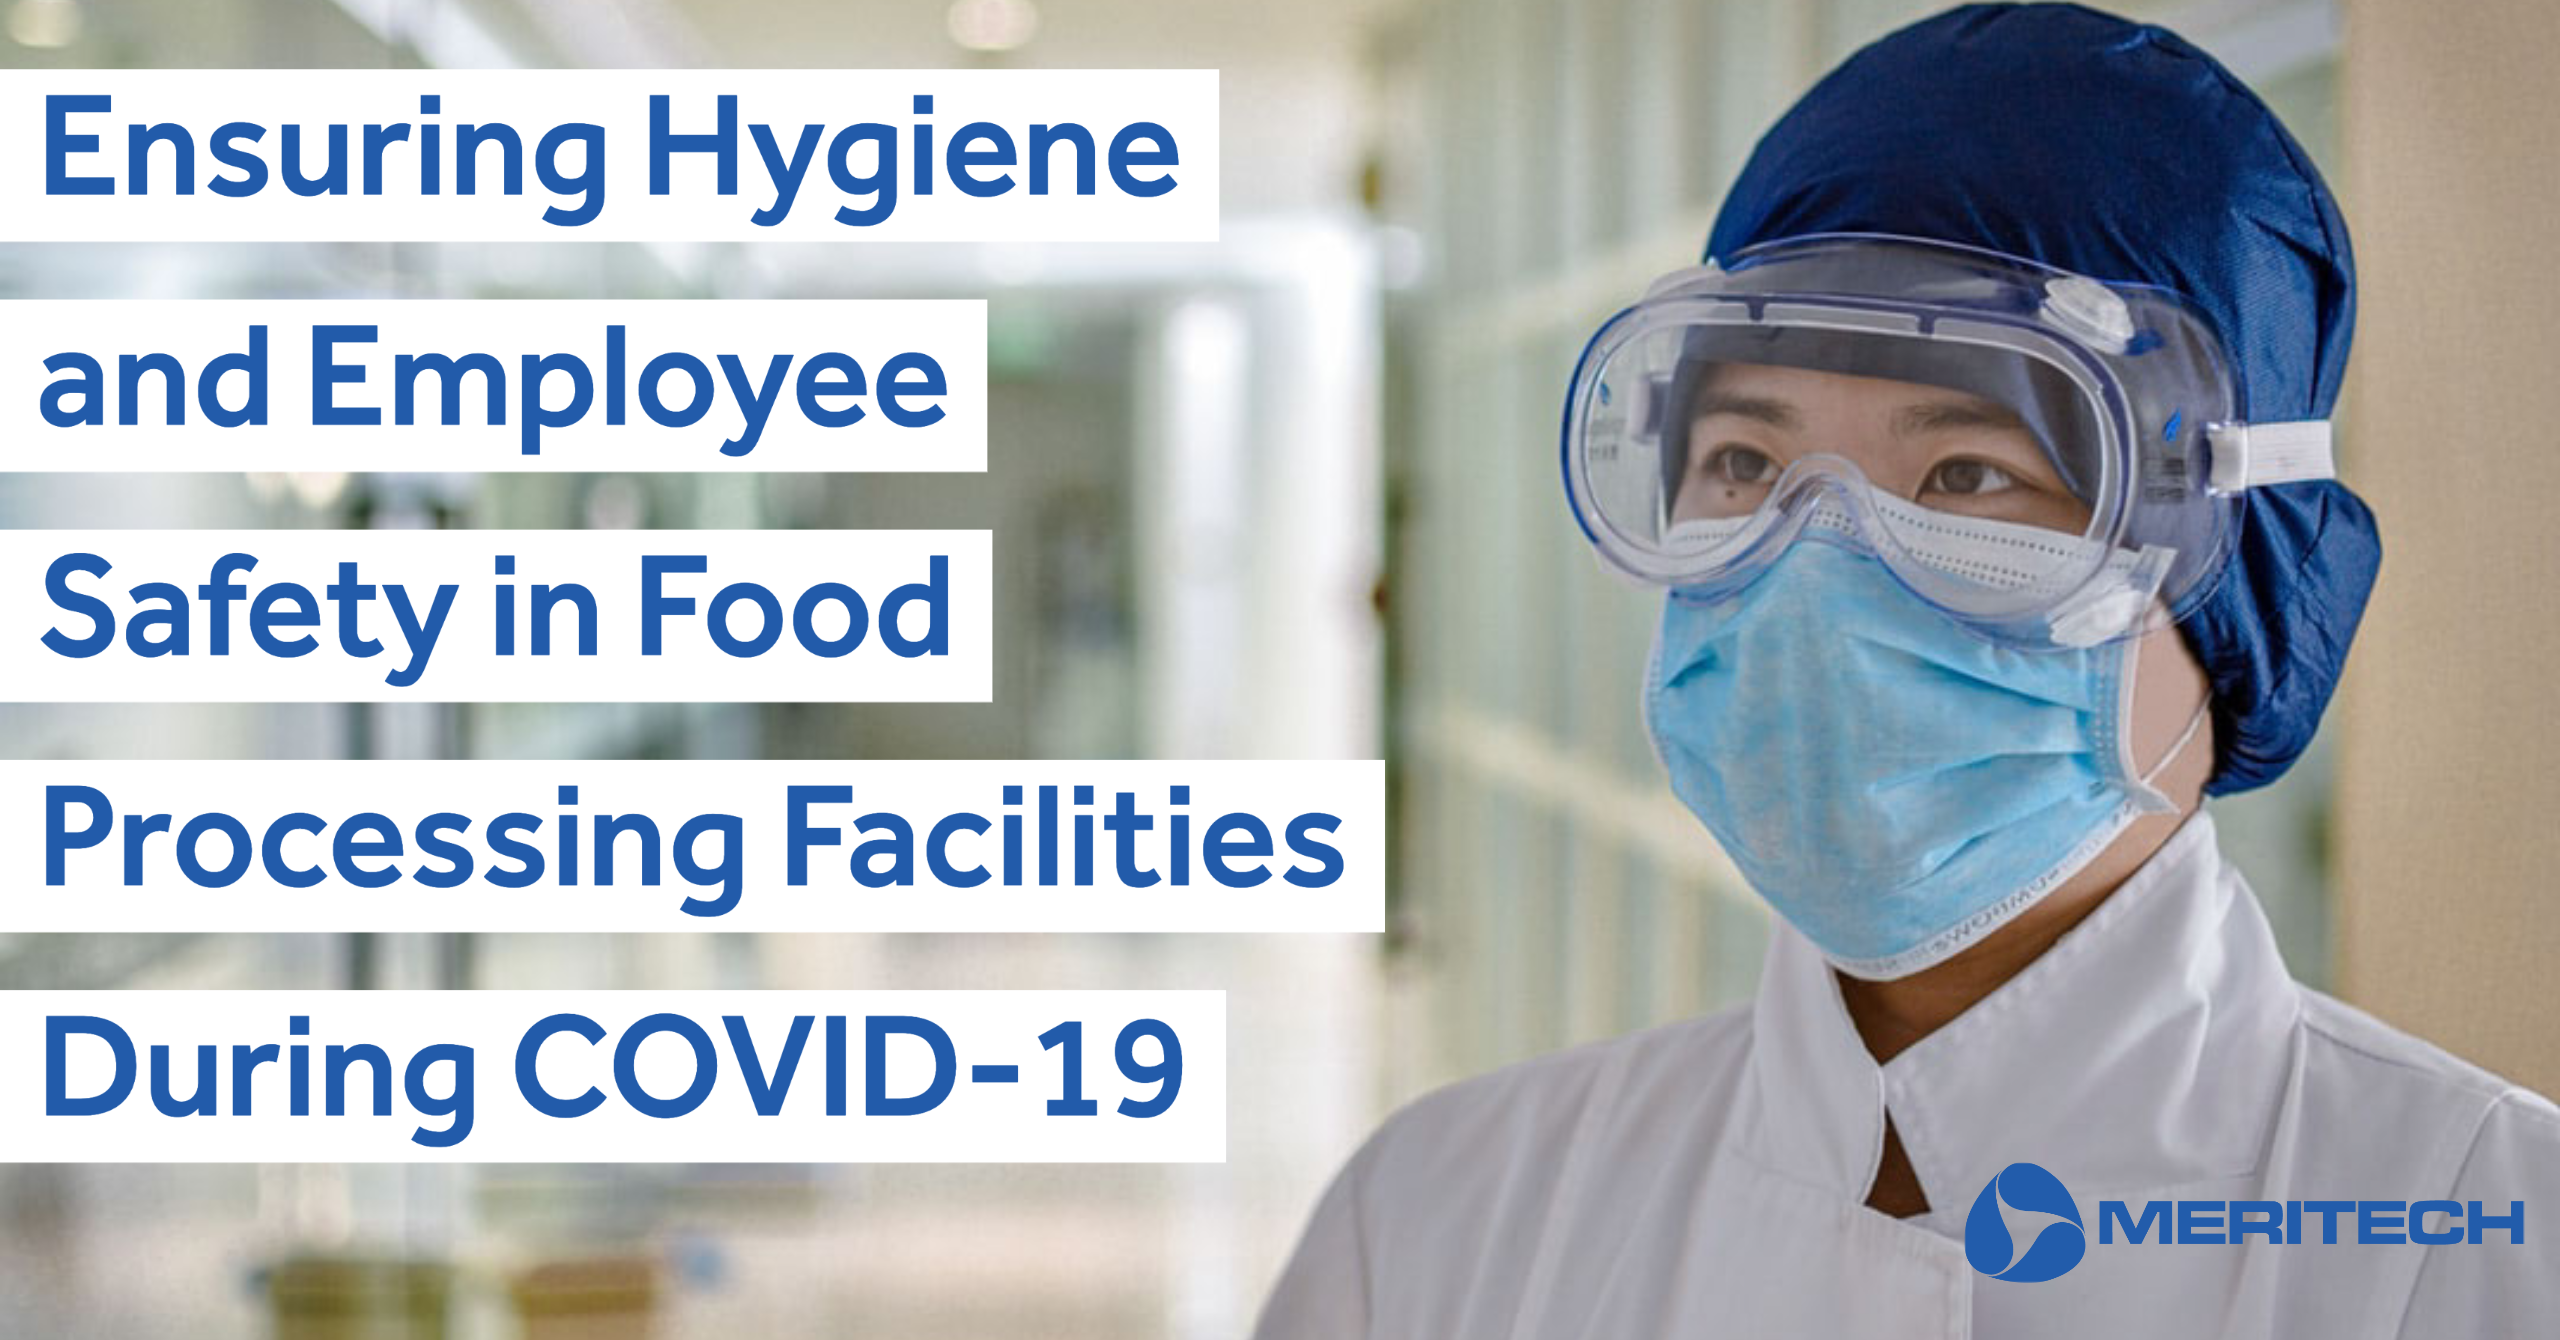 Ensuring Hygiene and Employee Safety in Food Processing Facilities During COVID-19